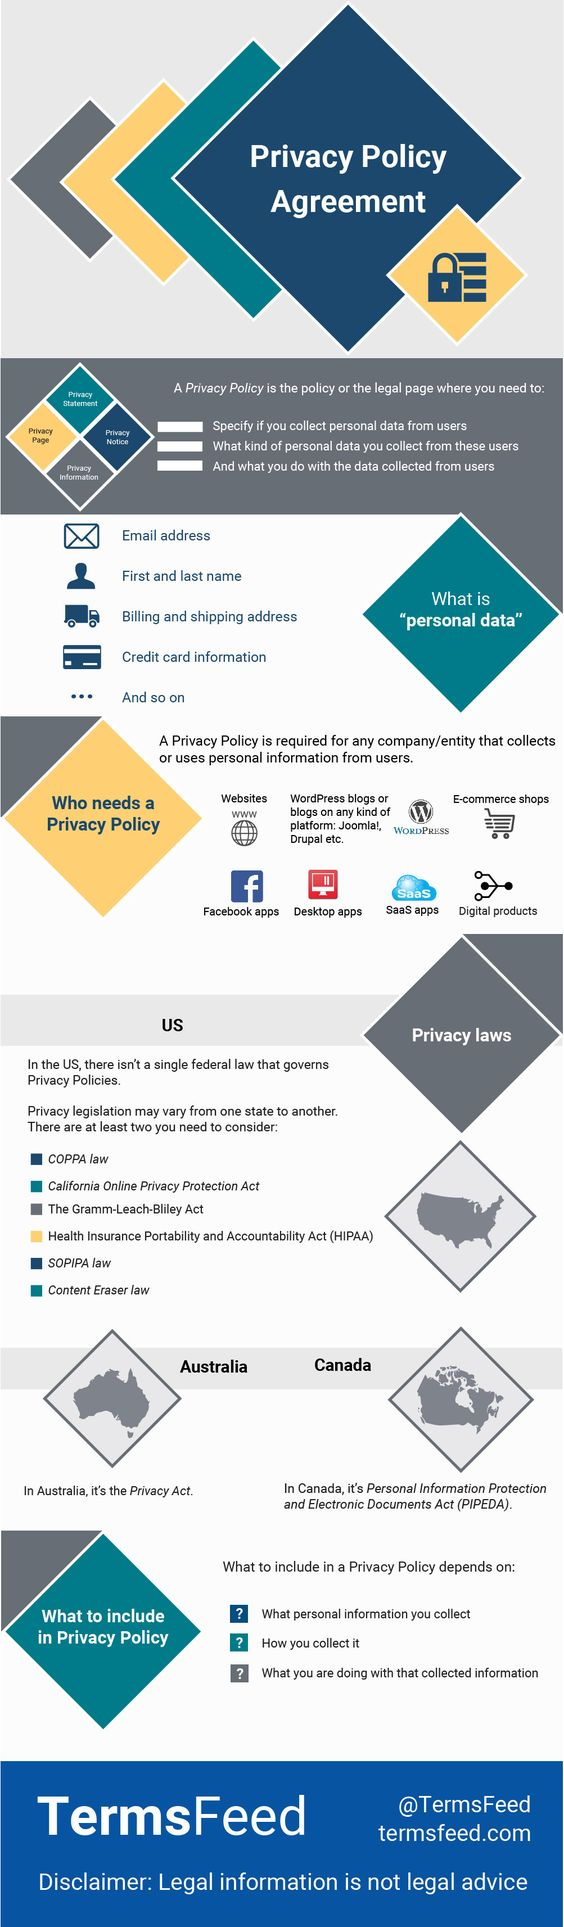 The Privacy Policy Agreement and Template basics